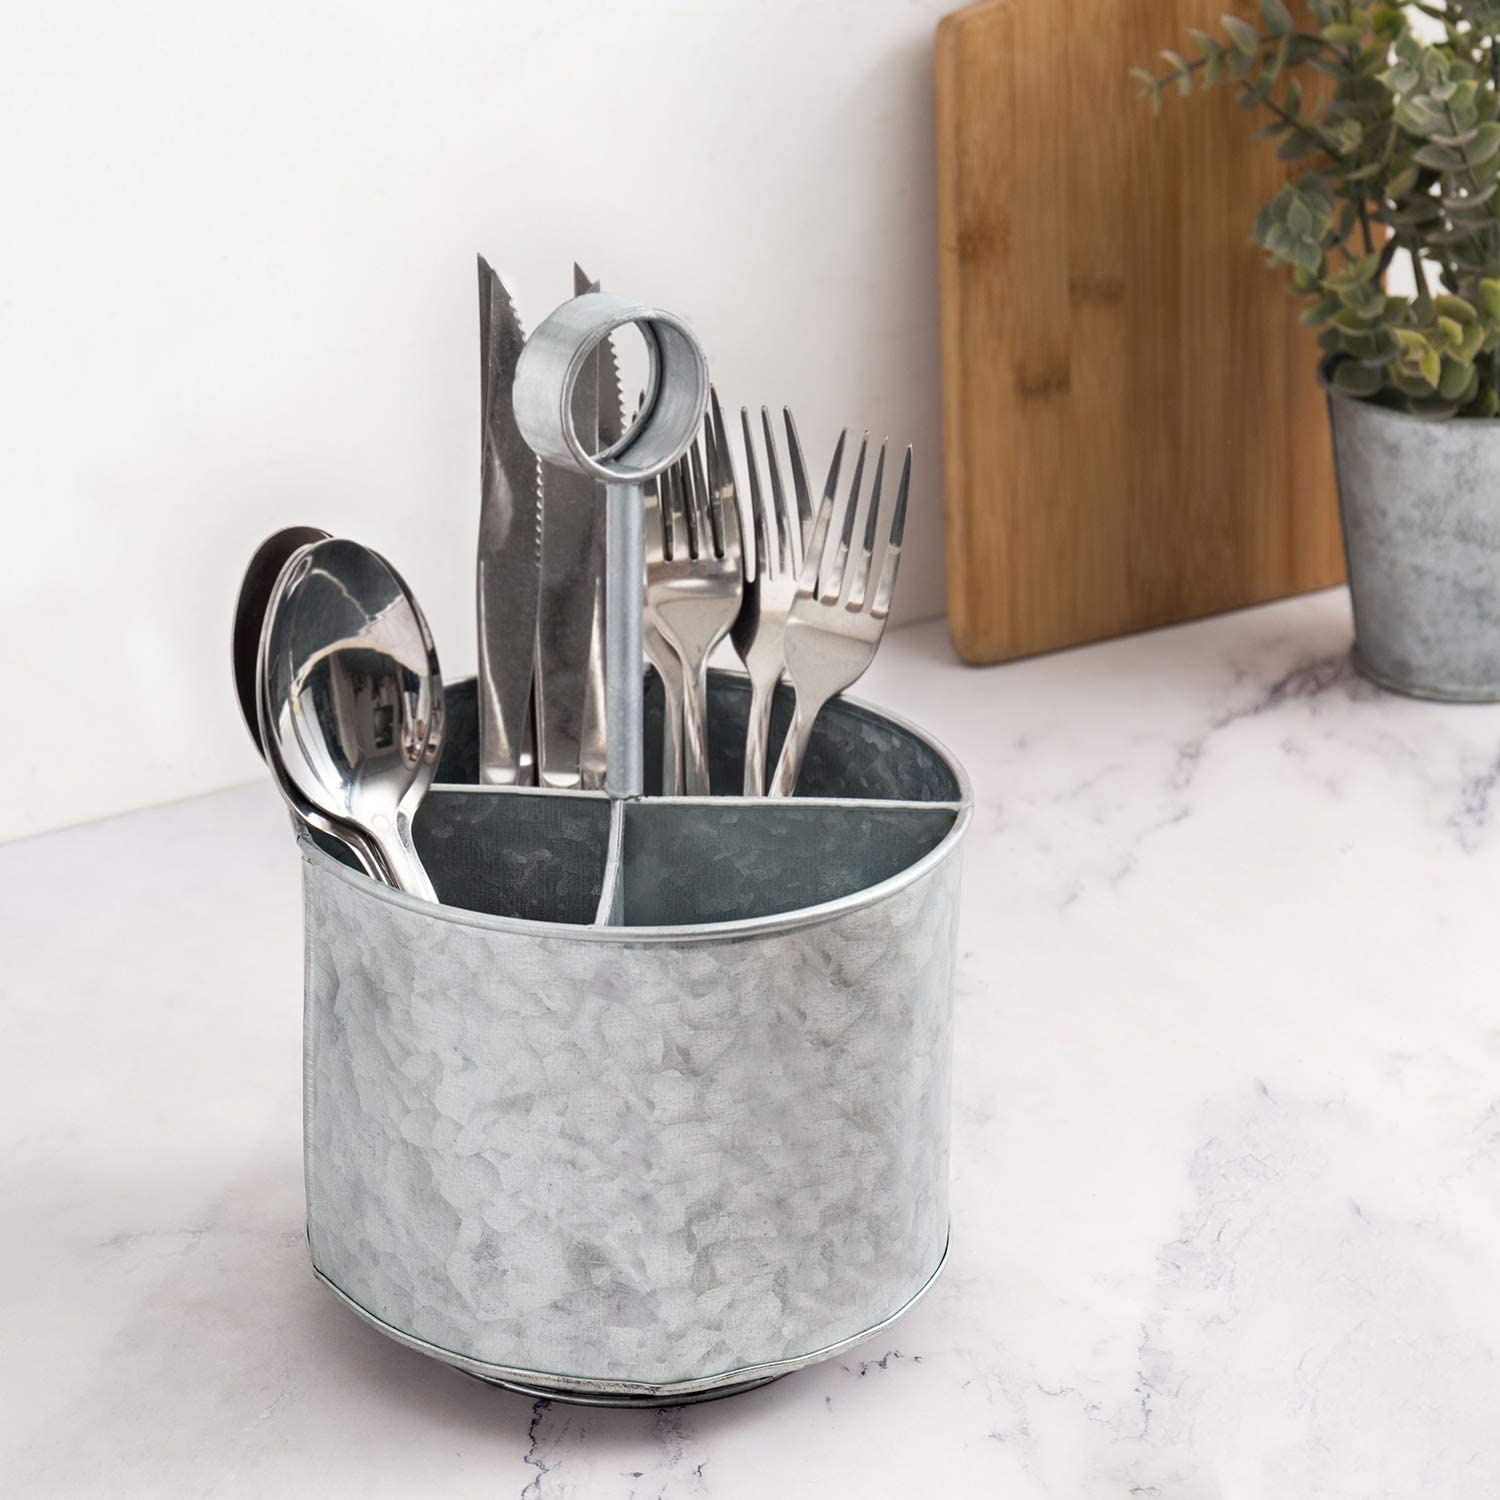 MyGift 4-Compartment Galvanized Silver Metal Flatware Server Caddy for Forks, Knives & Spoons with Handle